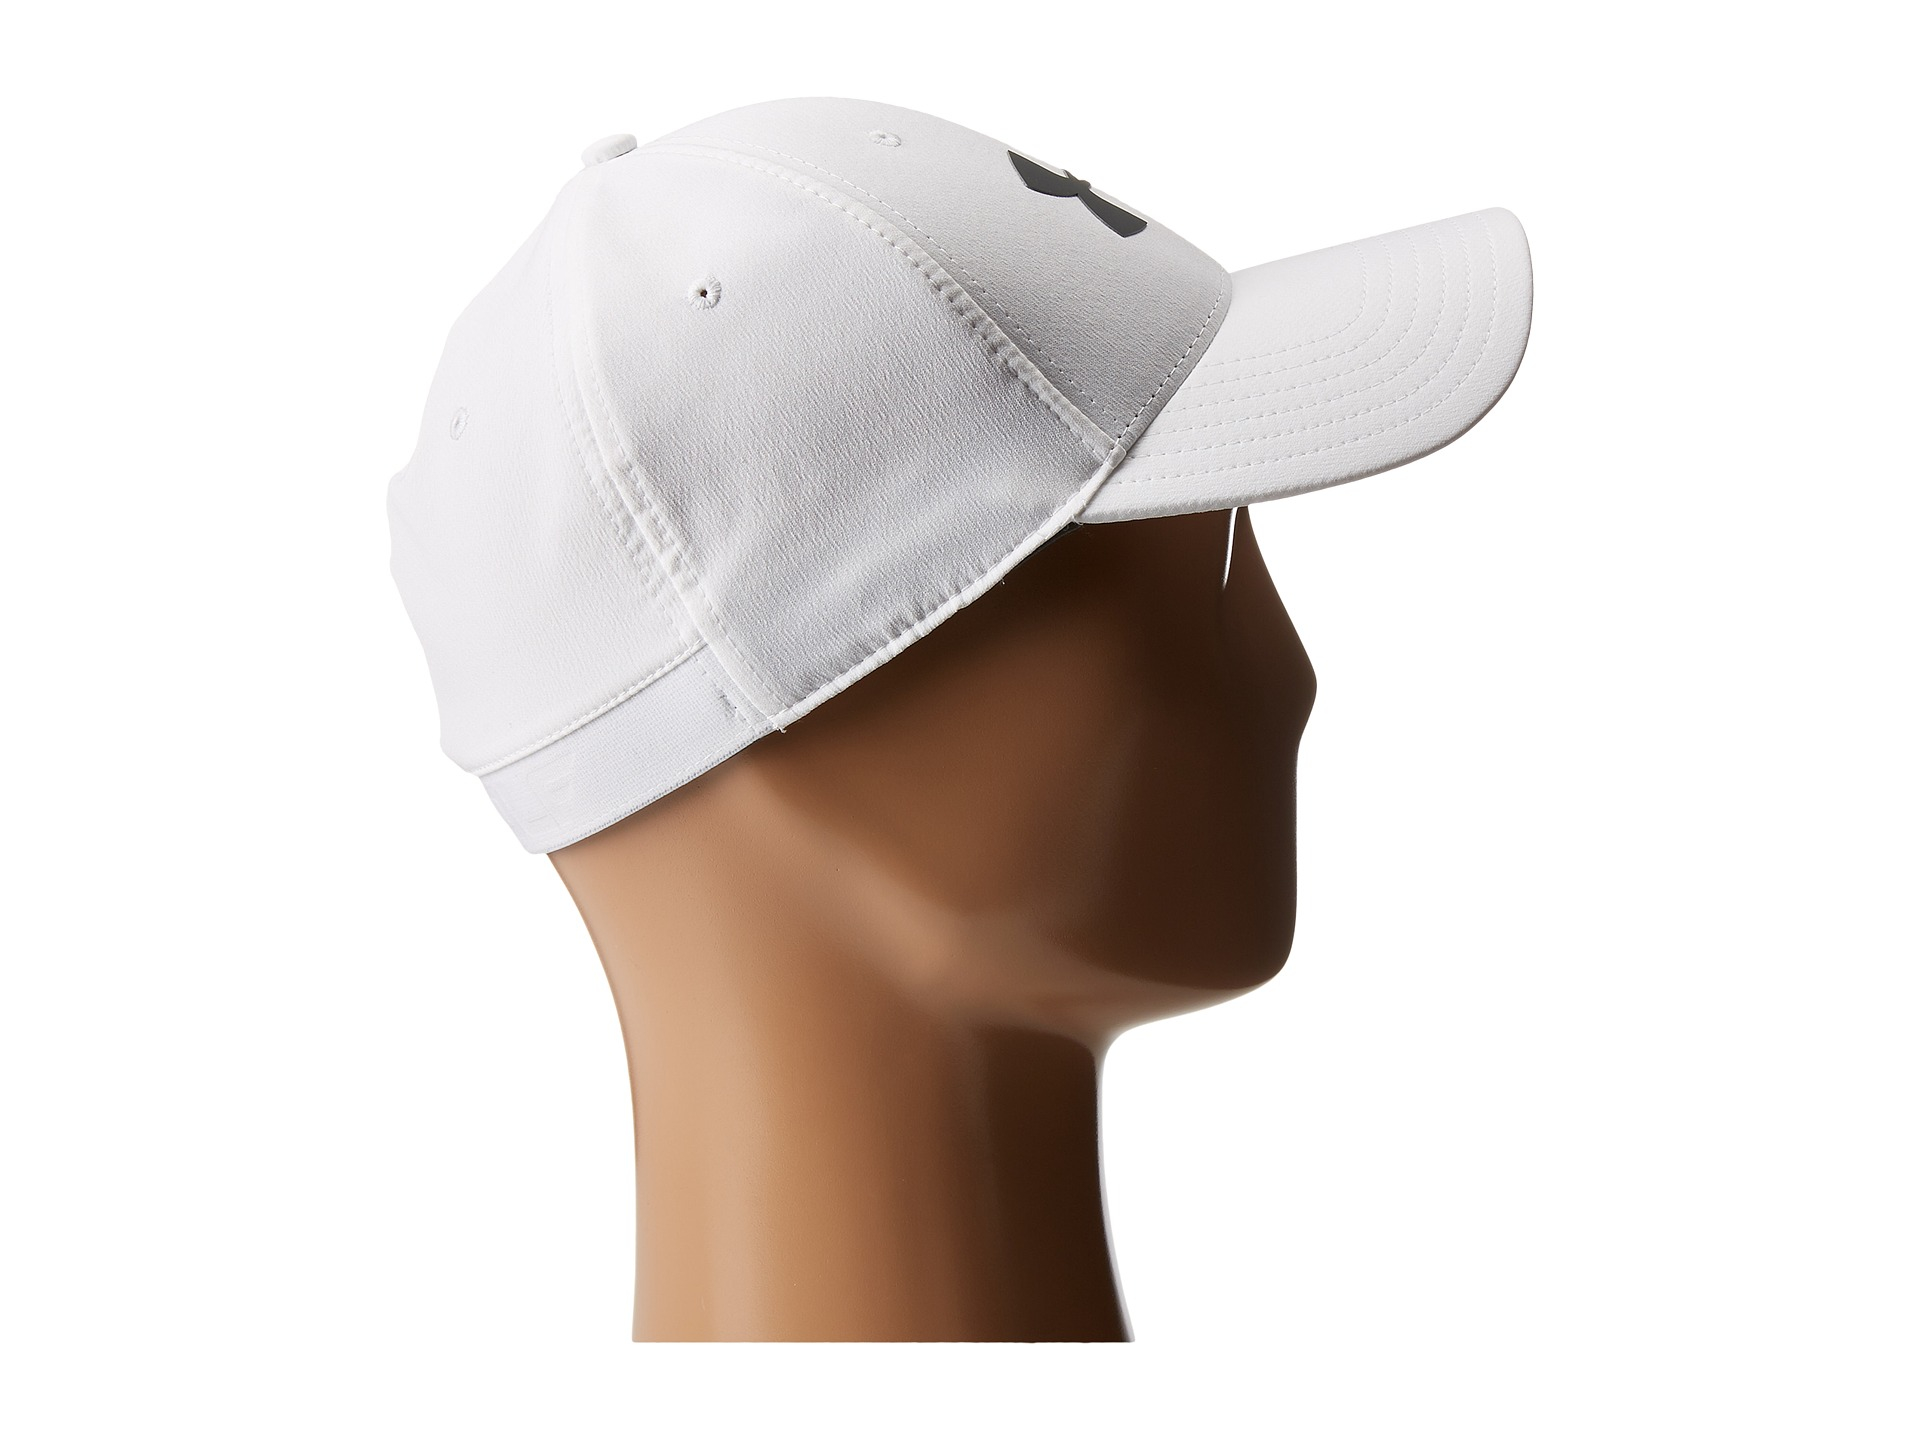 Lyst - Under Armour Ua Golf Headline Cap in White for Men fba6ff313a7